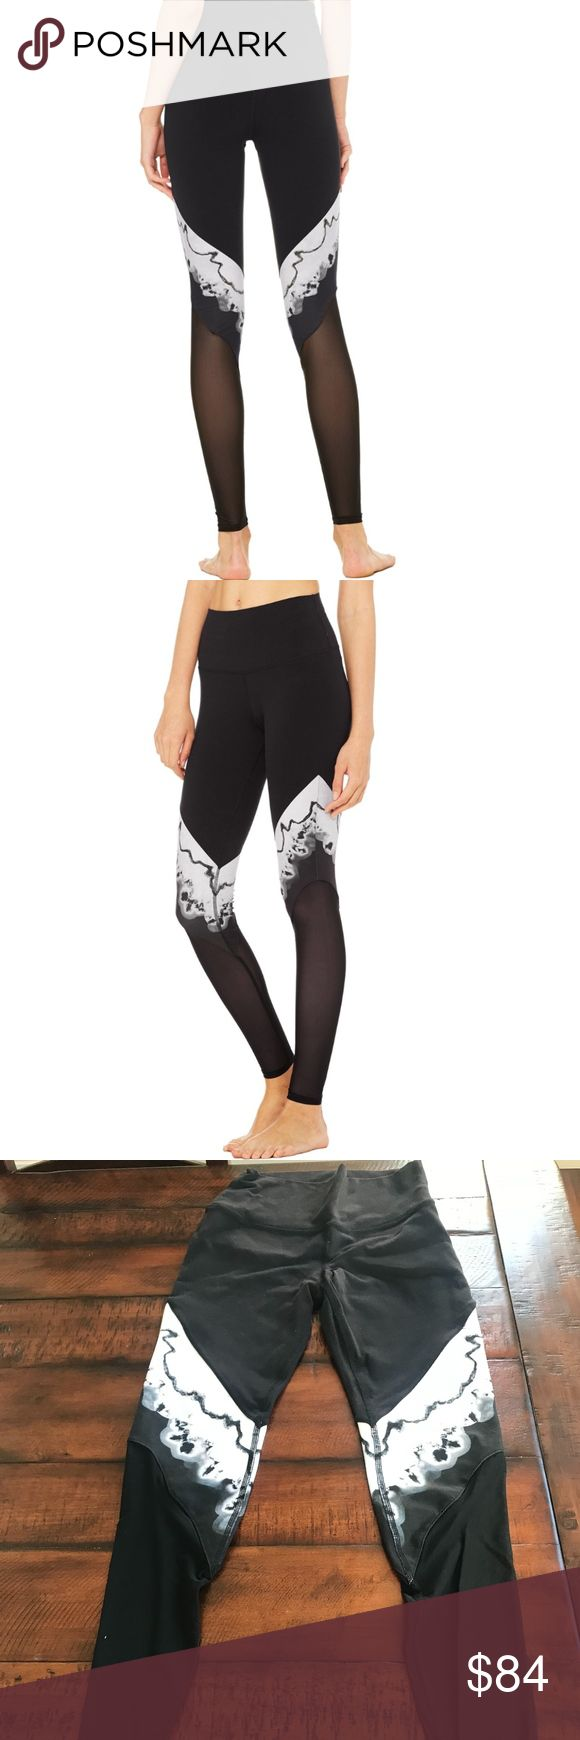 ALO Yoga HIGH-WAIST VERSE LEGGING Worn and washed once! EUC  Alo says: Slimming, lifting and performance enhancing, the Verse Legging is here with the coolest print of the season. And while we're utterly obsessed with the print, we can't get enough of the breathable mesh fabric, functional overlock seaming, and comfortable lined gusset.  - Engineered to lift, sculpt, contour and smooth - 4-way-stretch fabric for a move-with-you feel - Moisture-wicking antimicrobial technology - Breathable…